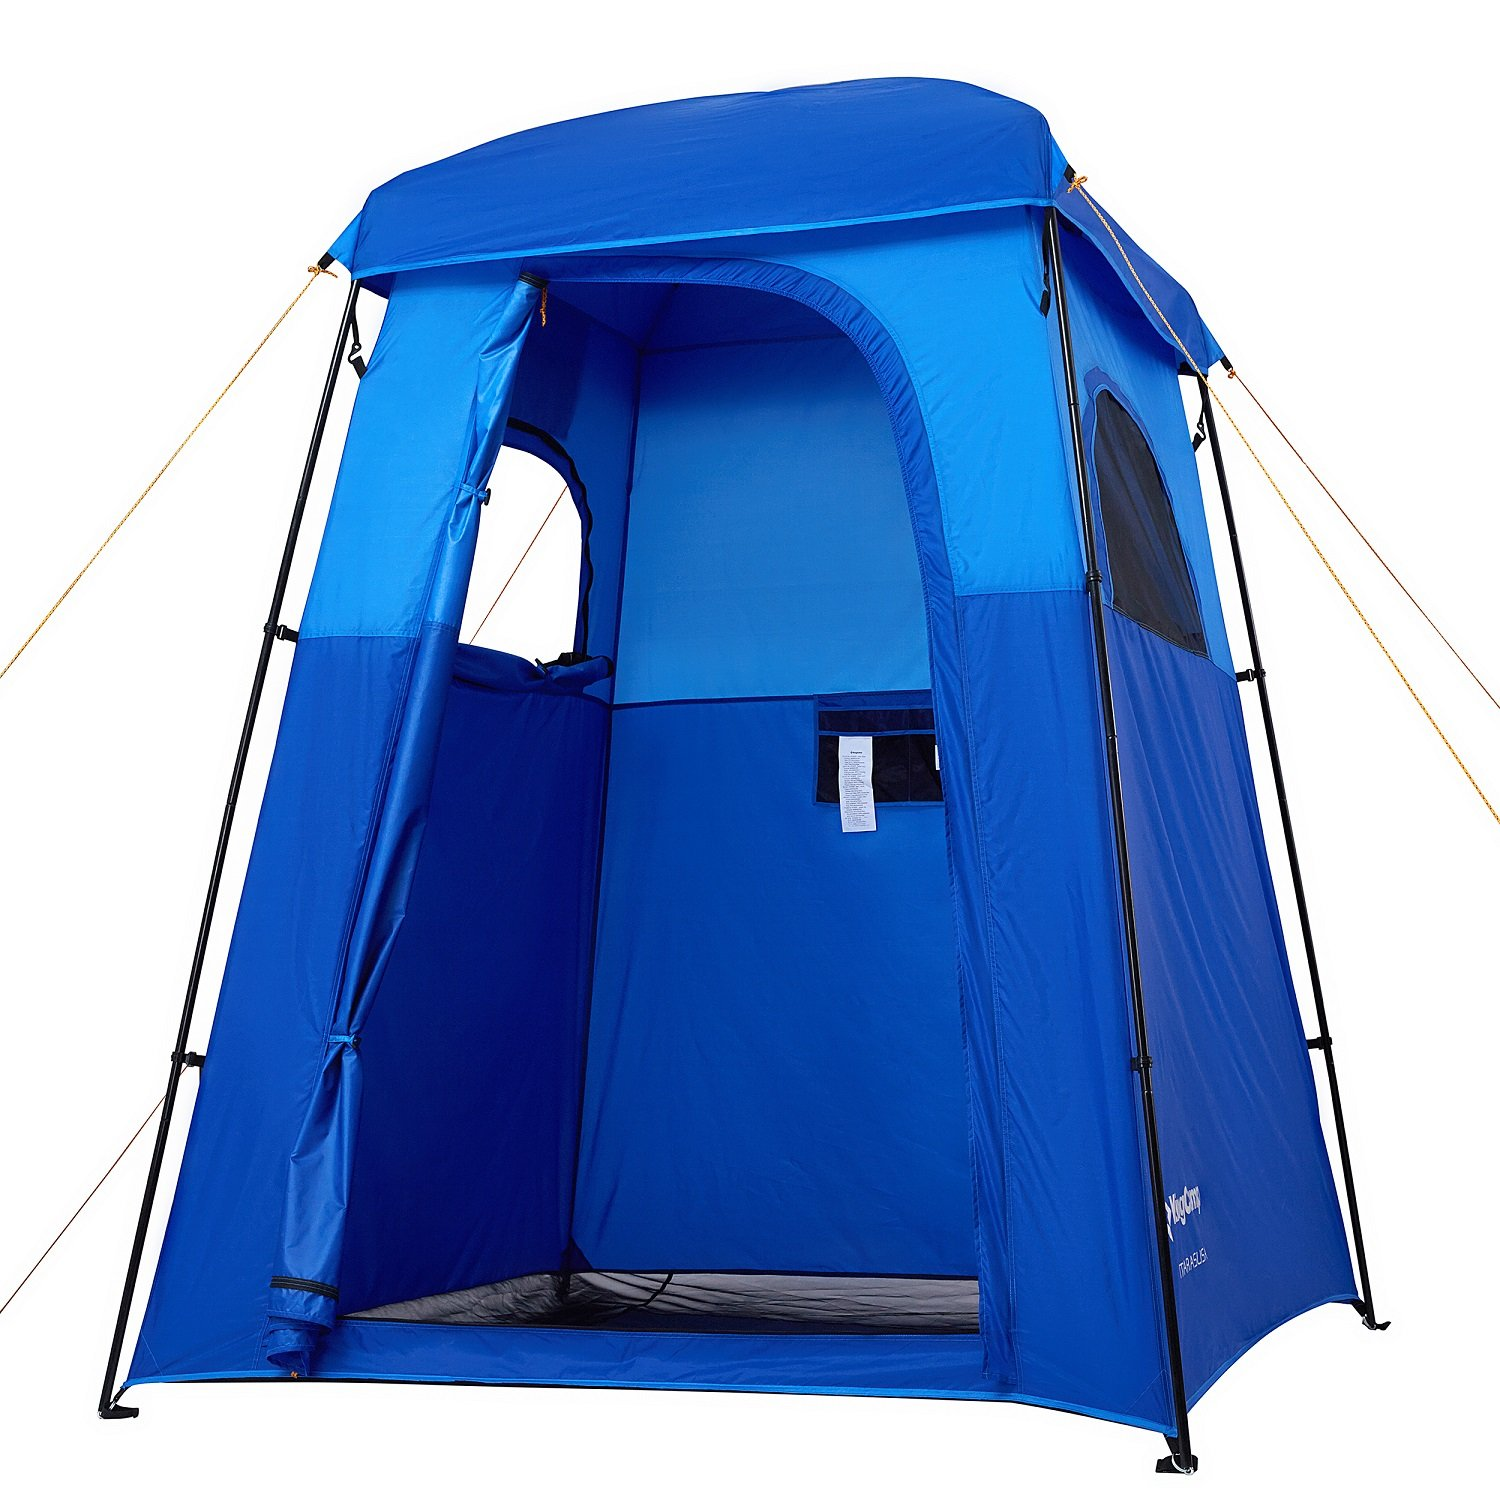 KingCamp Oversize Outdoor Easy Up Portable Dressing Changing Room Shower Privacy Shelter Tent (Blue) by KingCamp